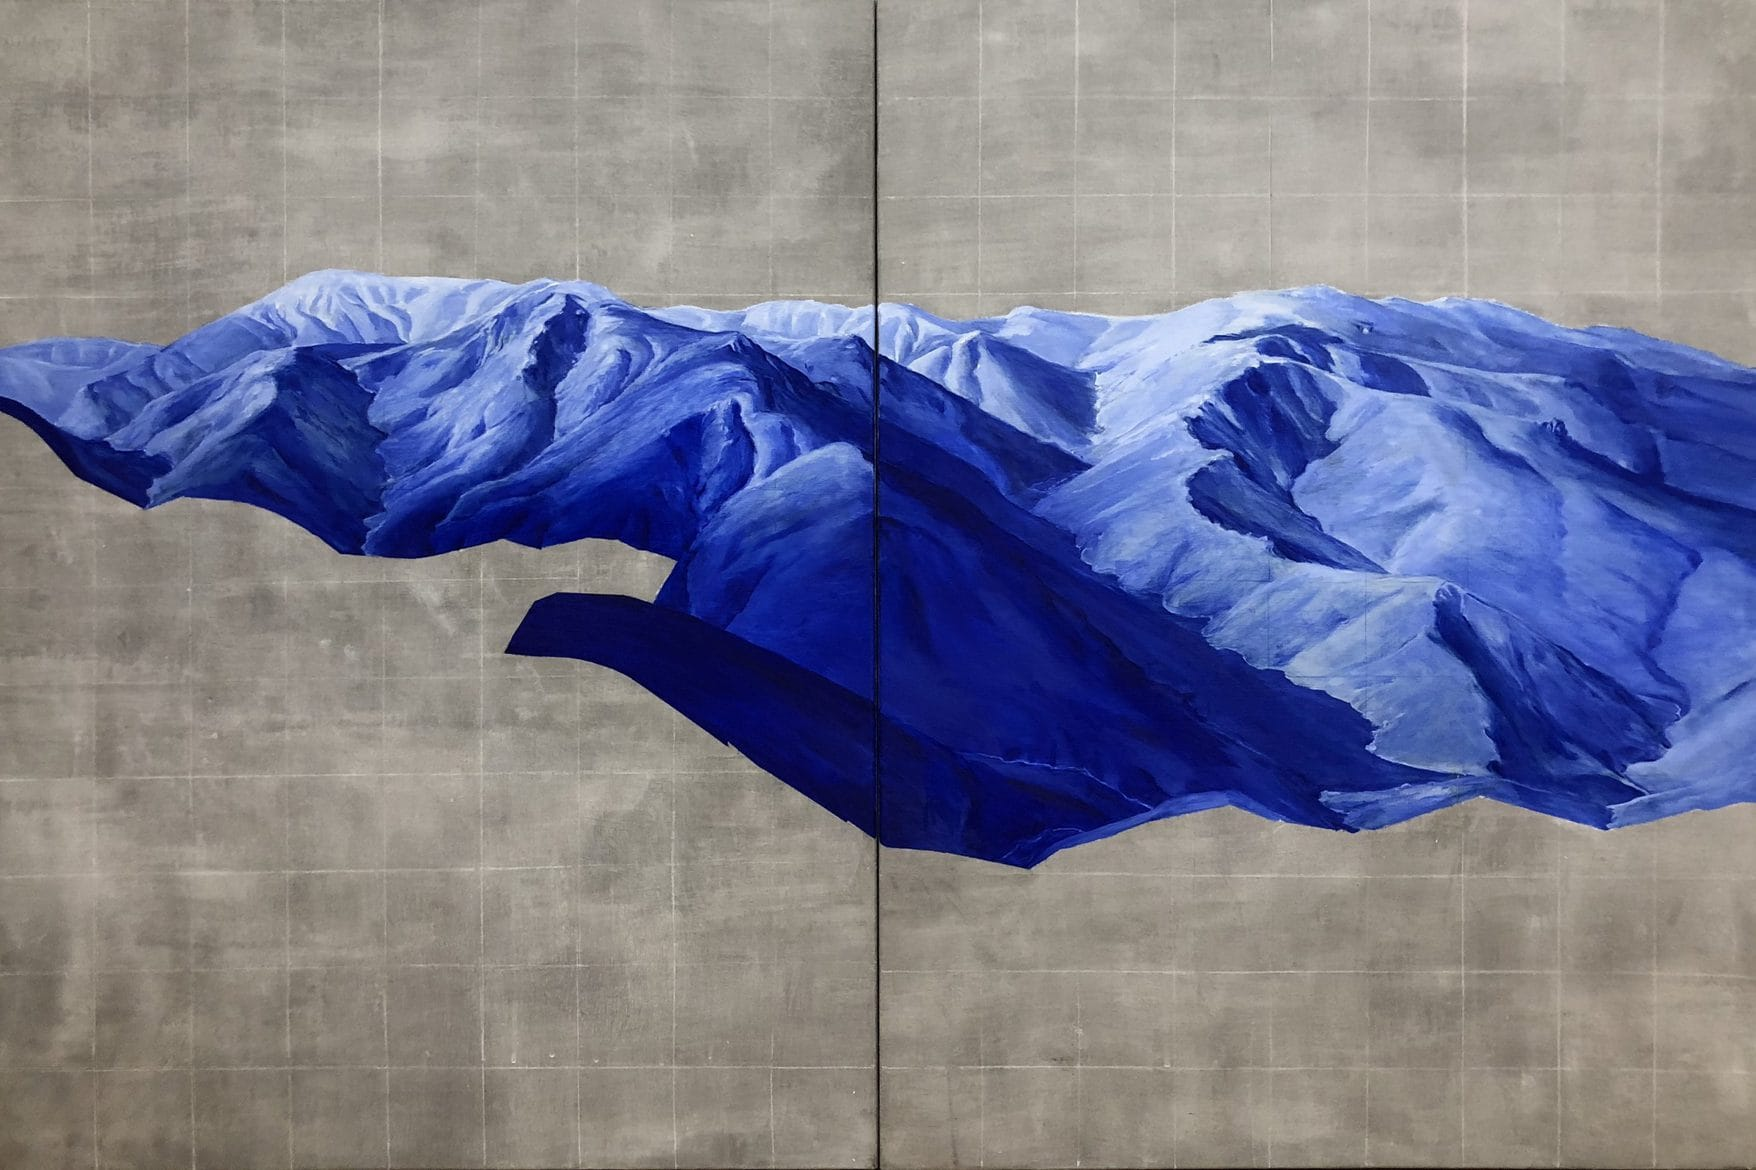 'Siren song creek (Cadaver IV)', 2019, oil and wax on linen, diptych, overall 180 x 120cm